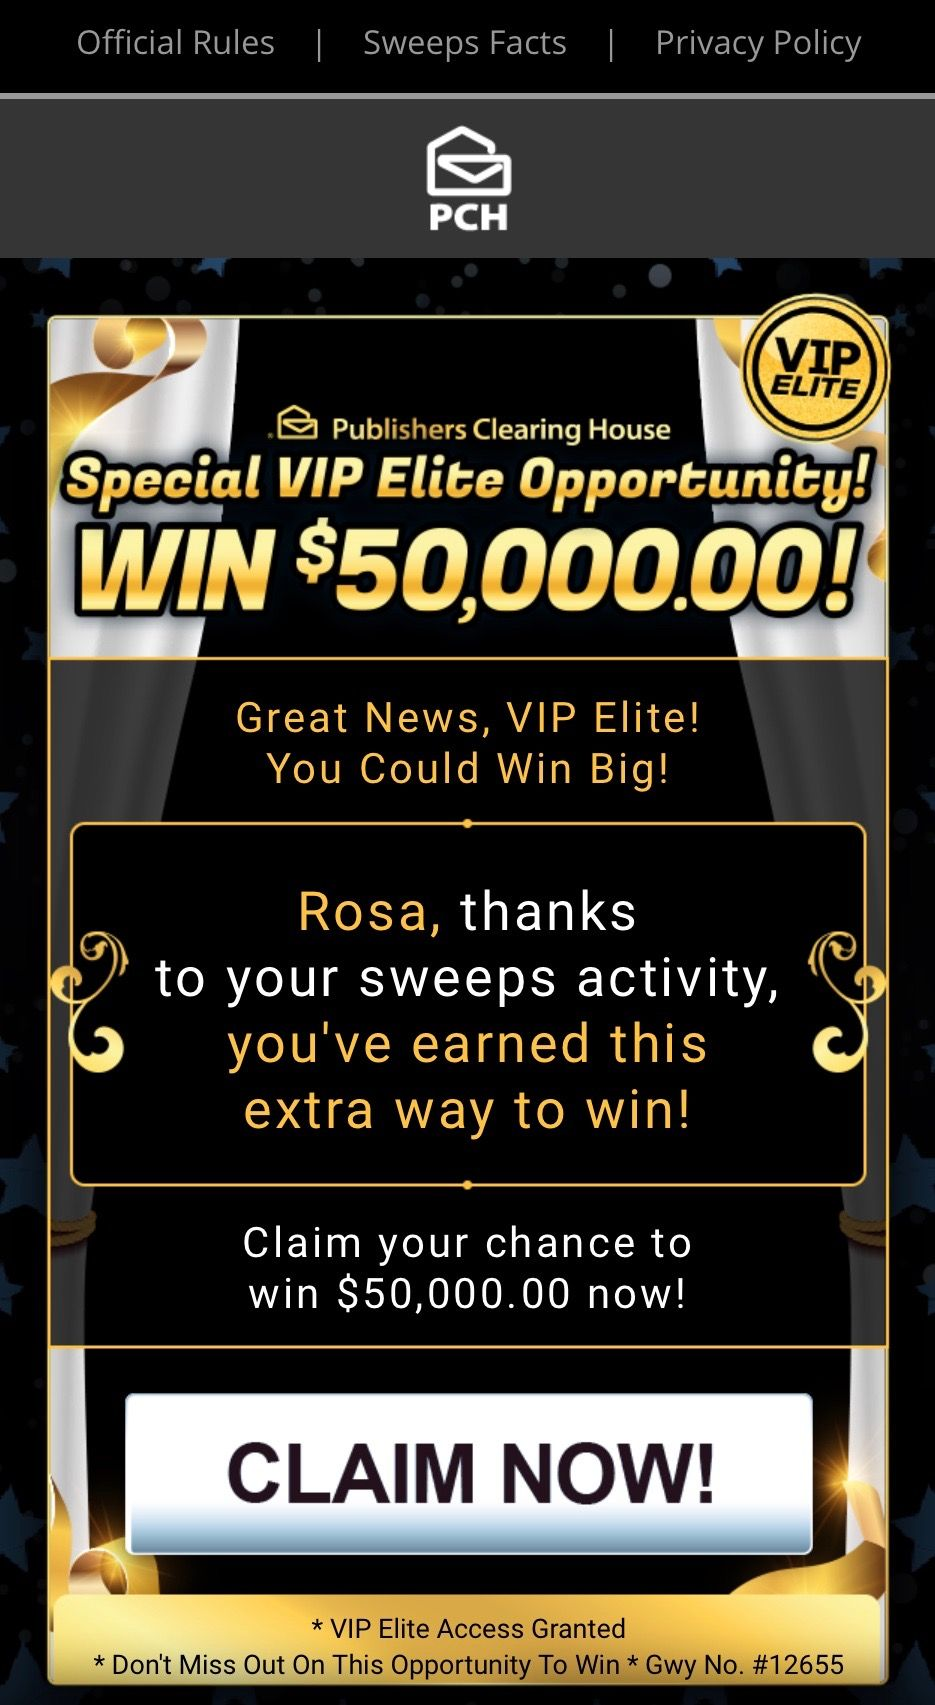 PCH VIP ELITE I RROJAS CLAIM MY ENTRY TO WIN $50,000 00